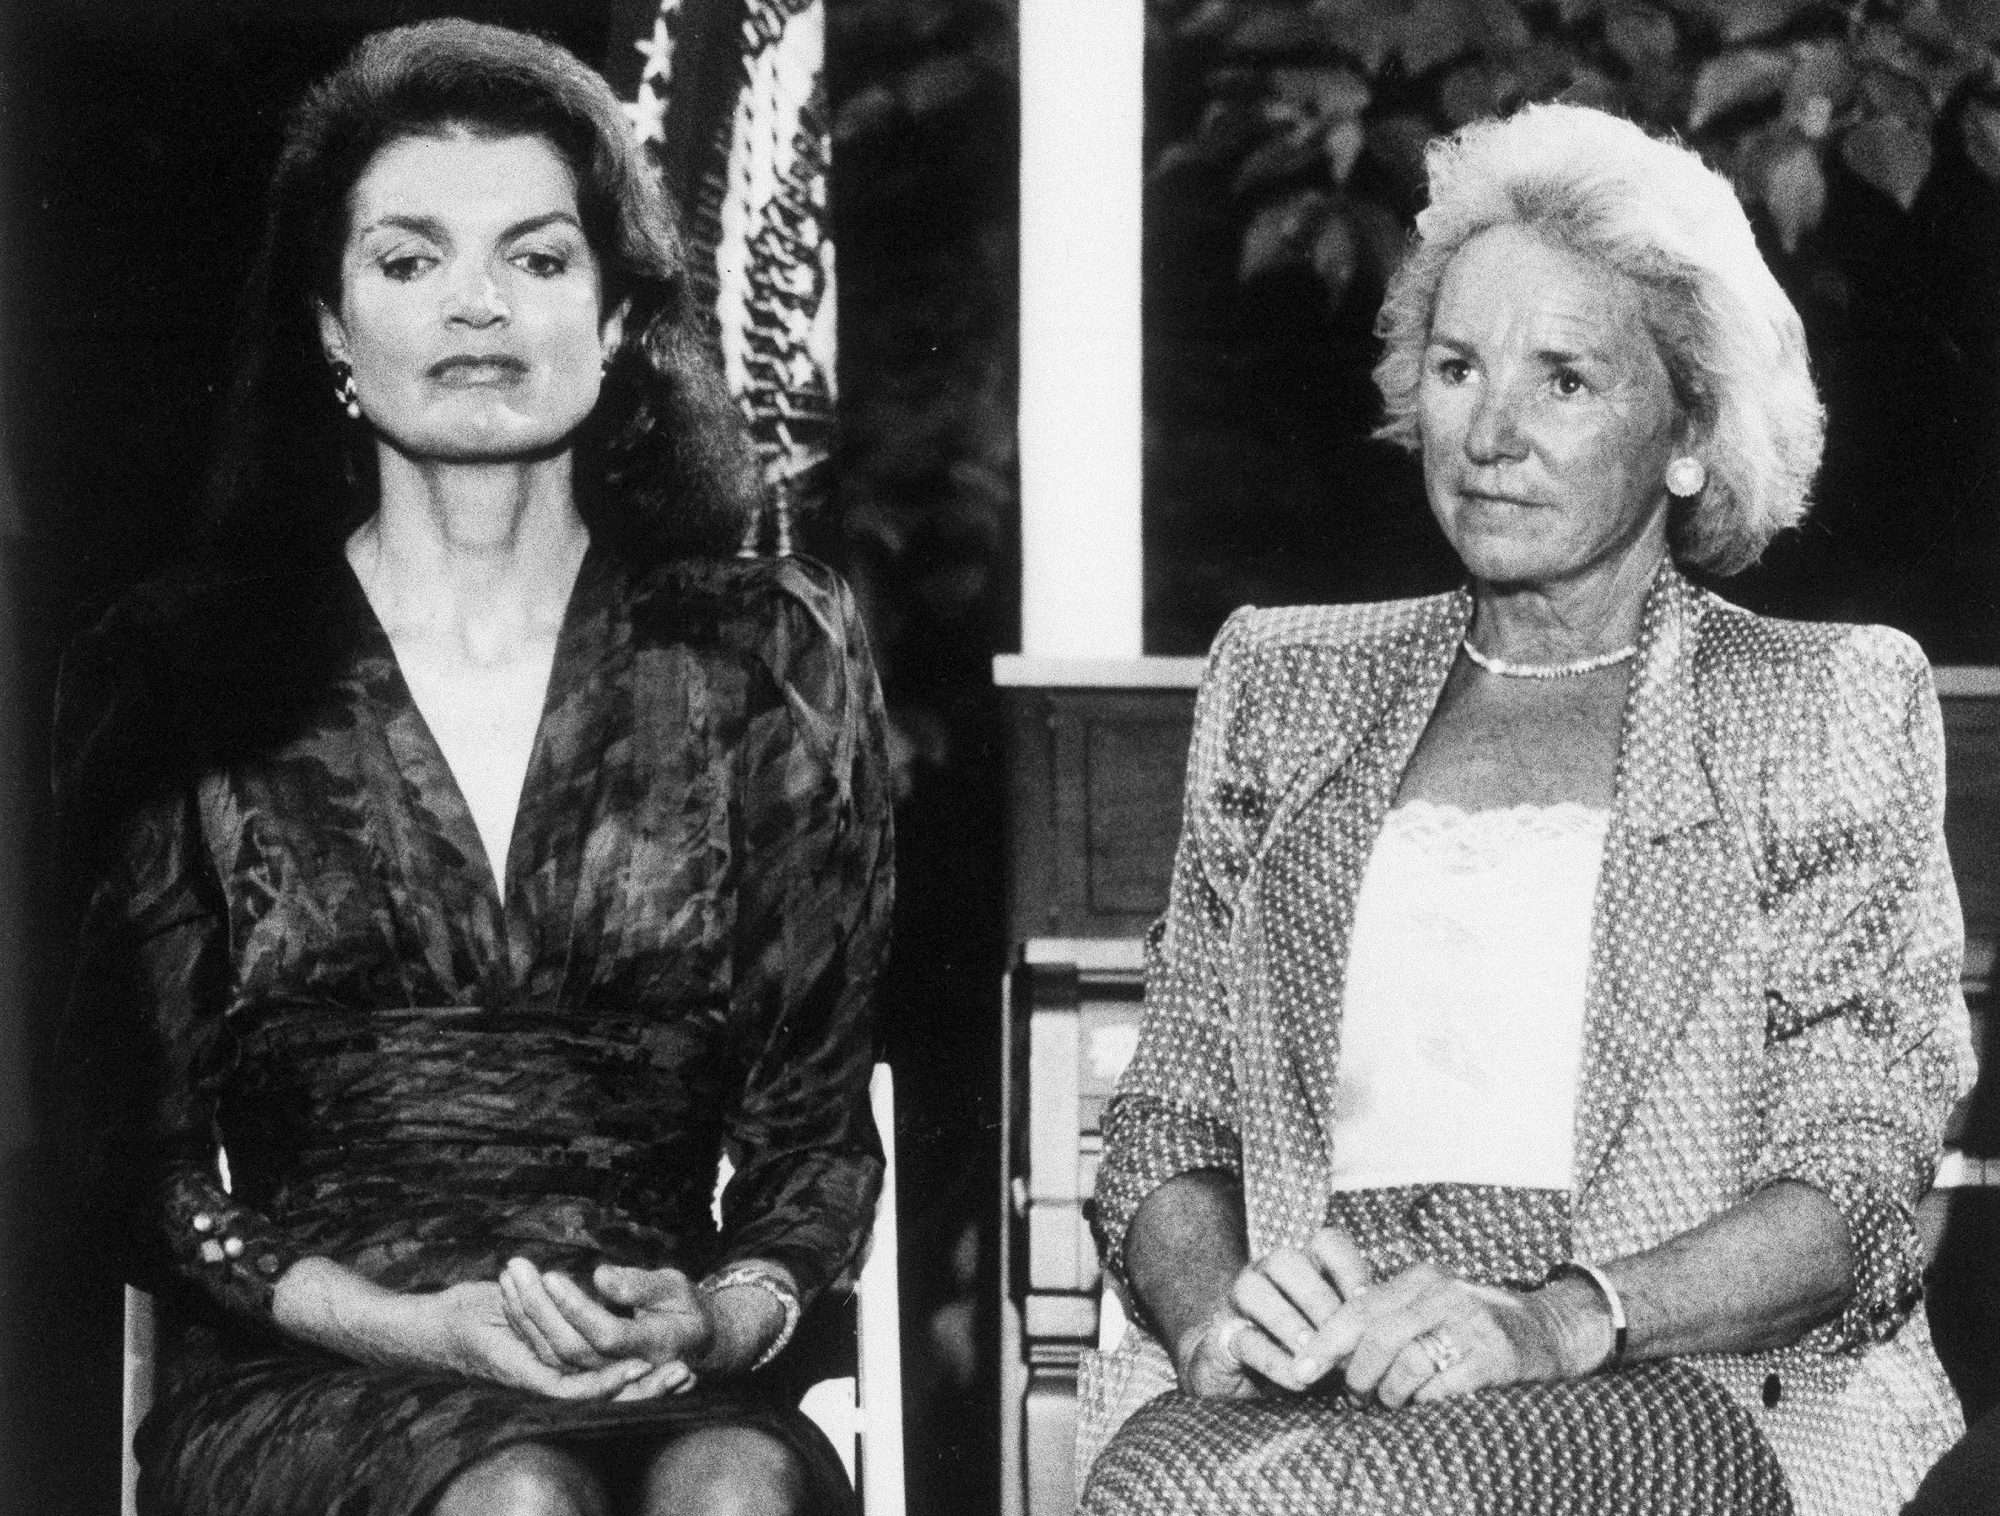 Read the Wrenching Letter Jackie Kennedy Wrote to RFK's Wife Ethel After His Death 50 Years Ago